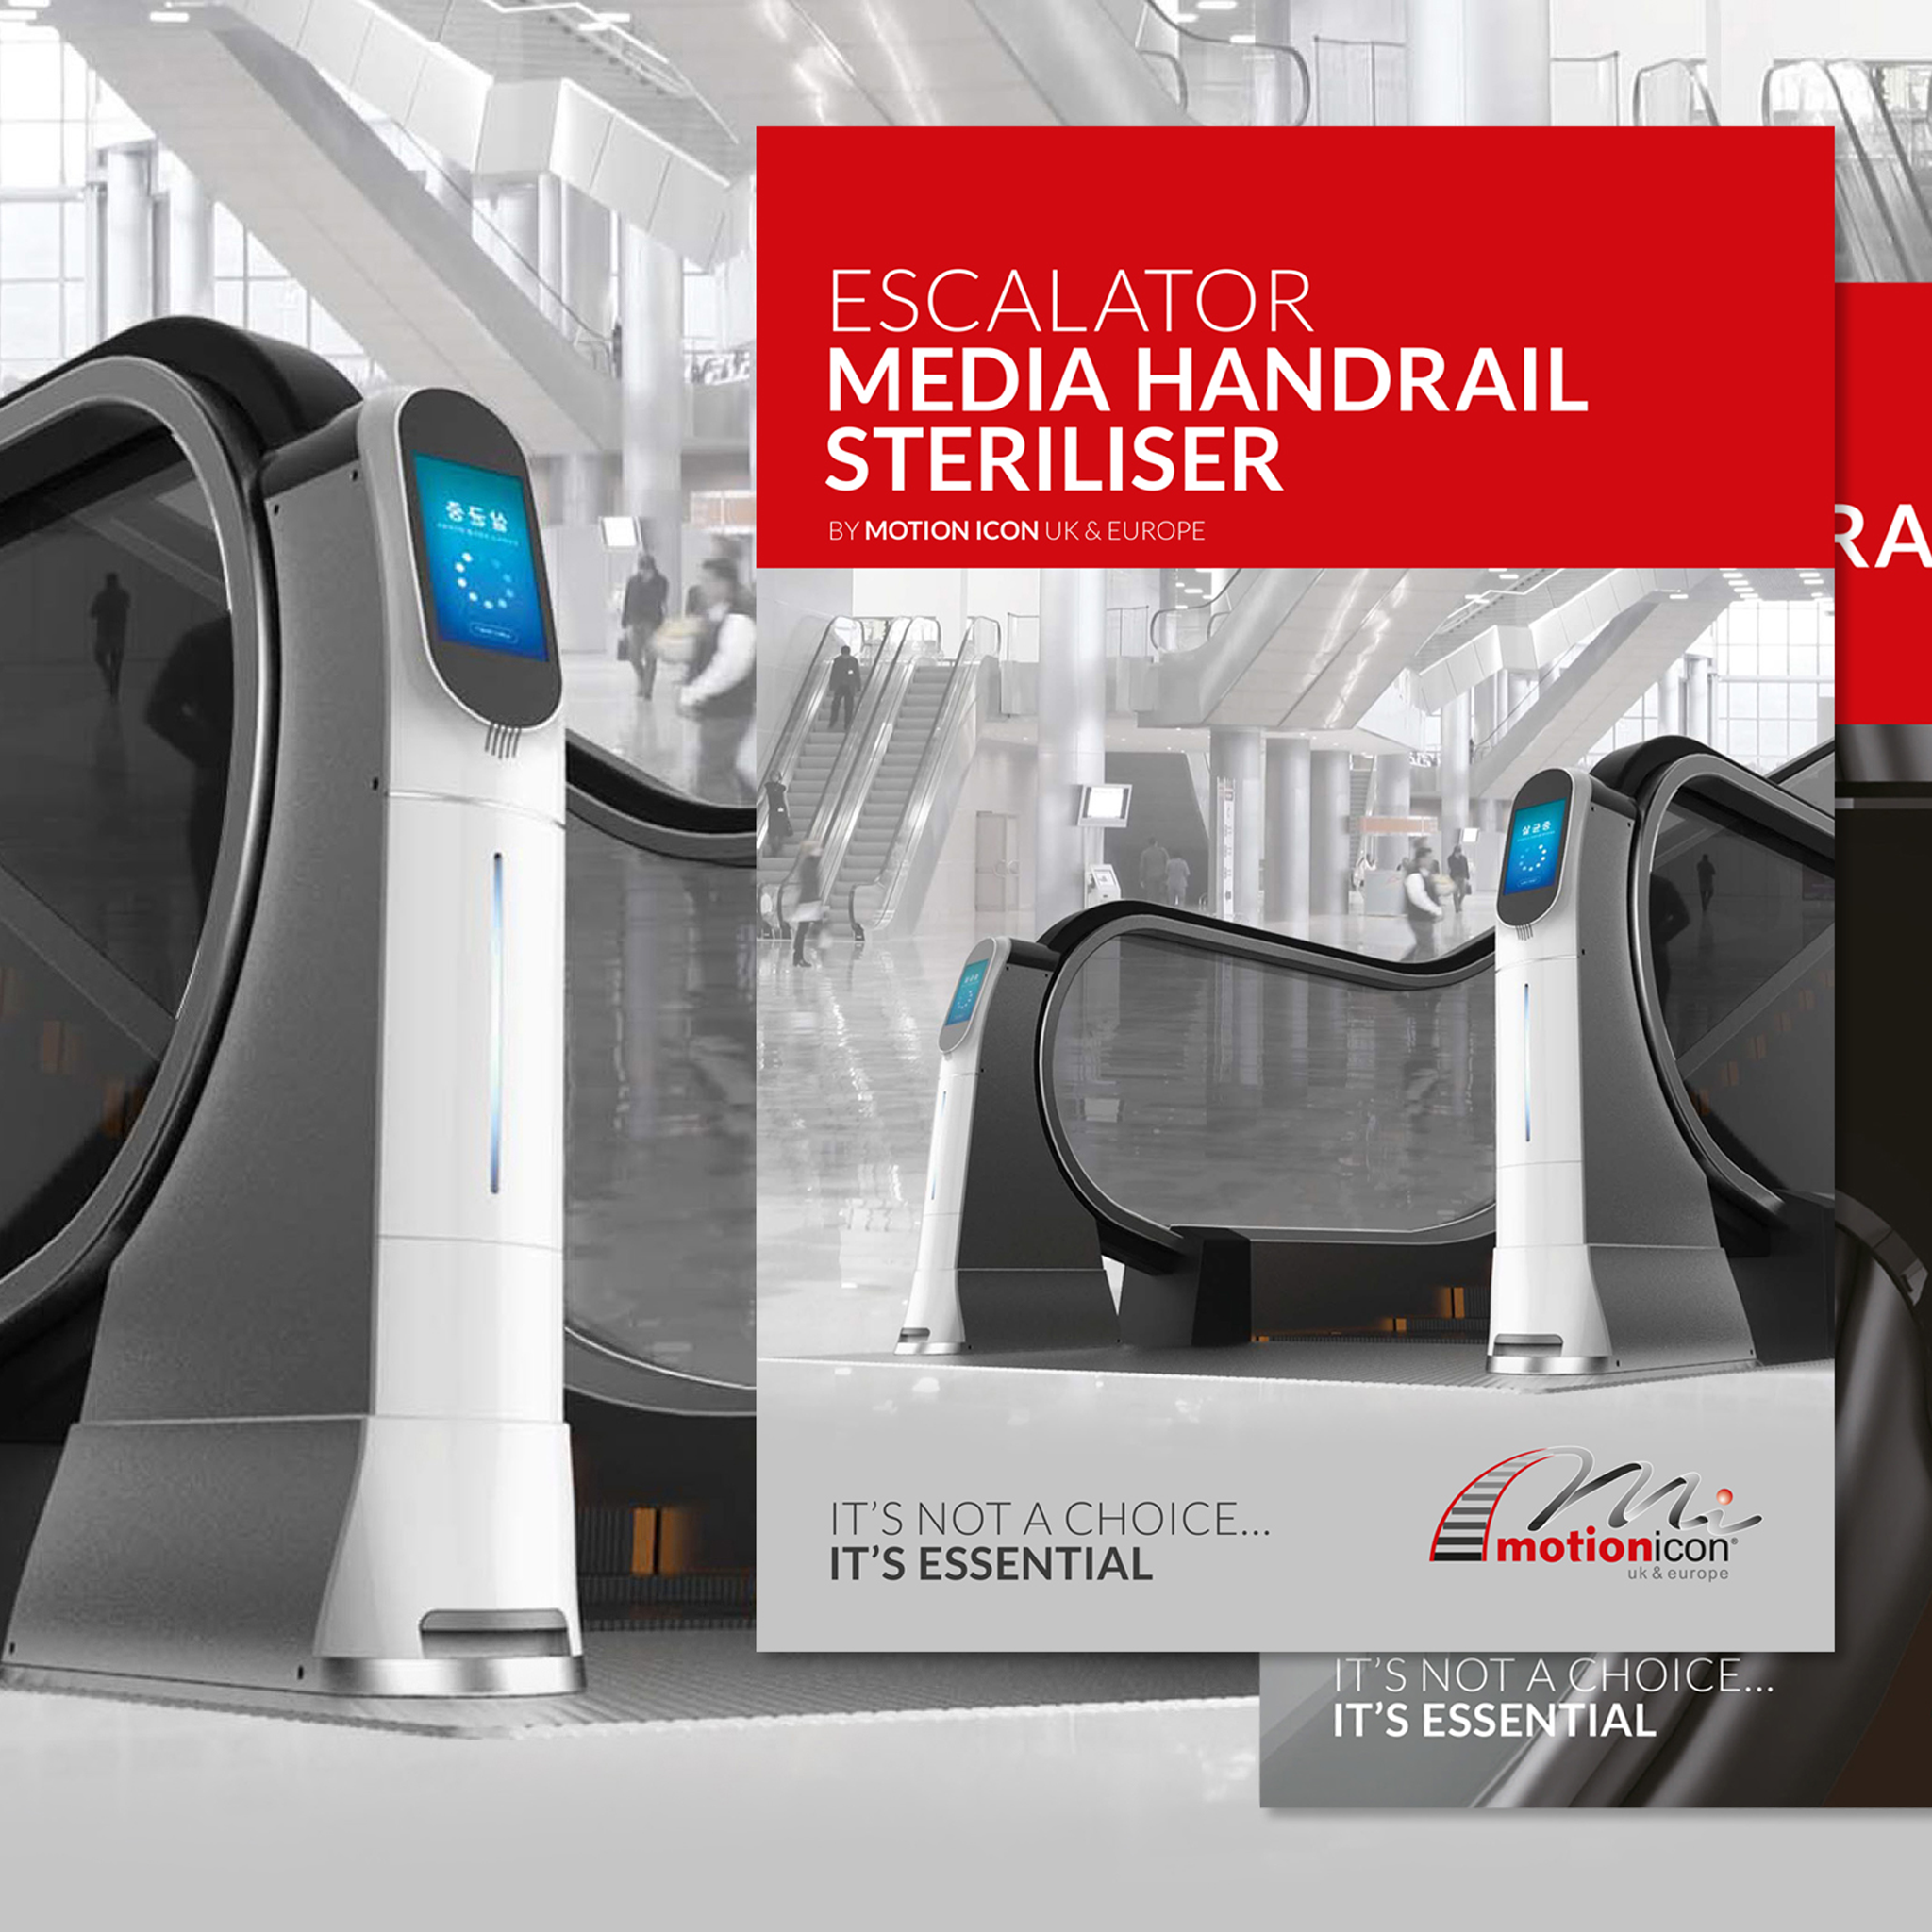 Escalator Digital Handrail Steriliser UK and Europe Latest News